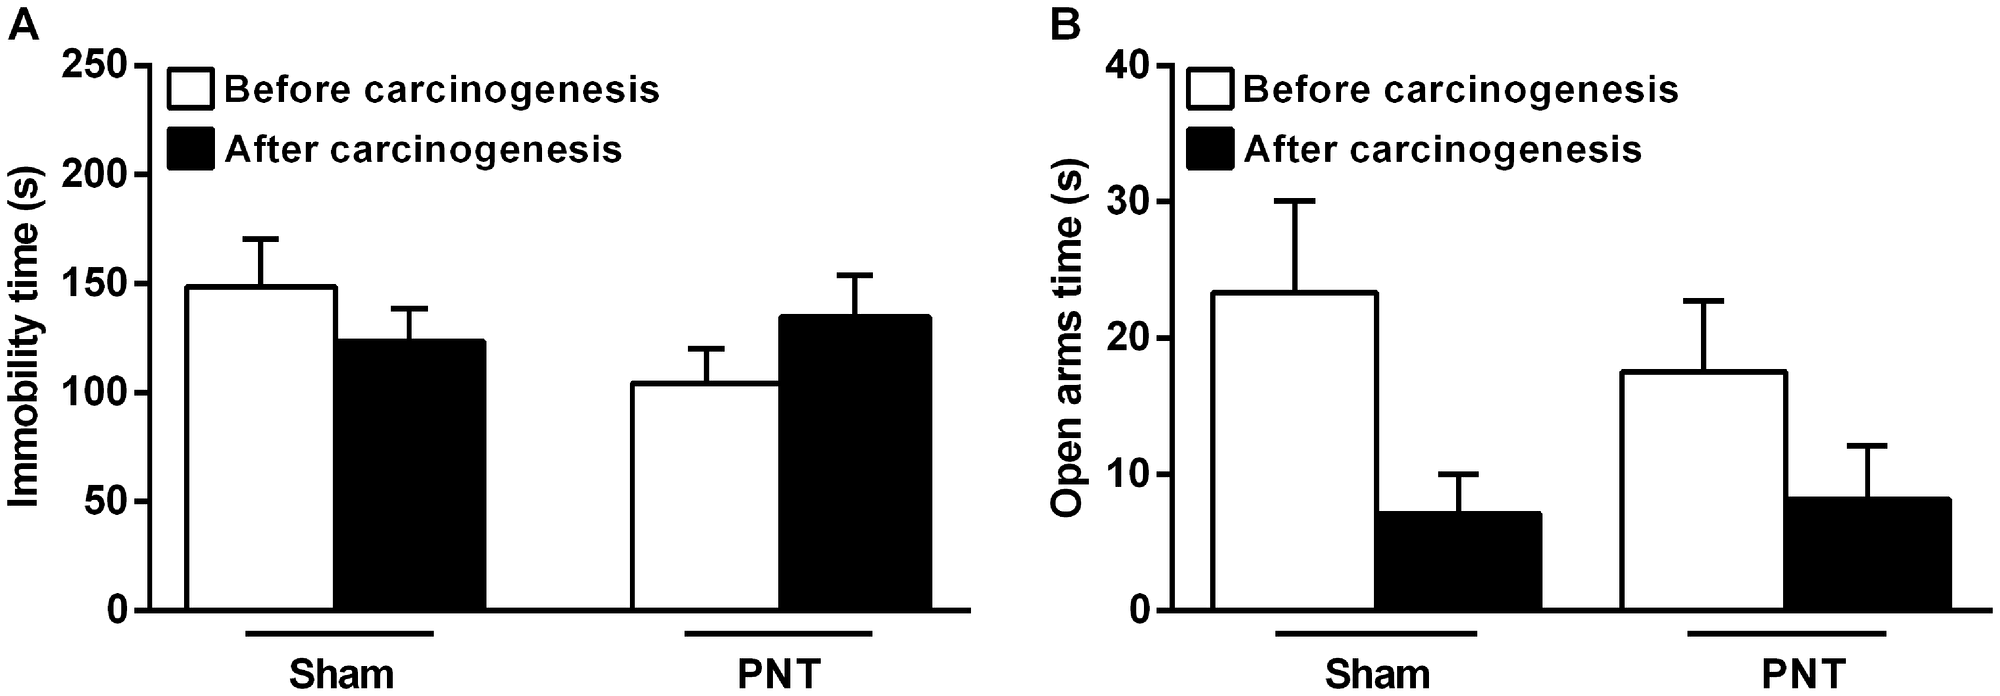 Depressive- and anxiety-like behaviors from sham and PNT rats.